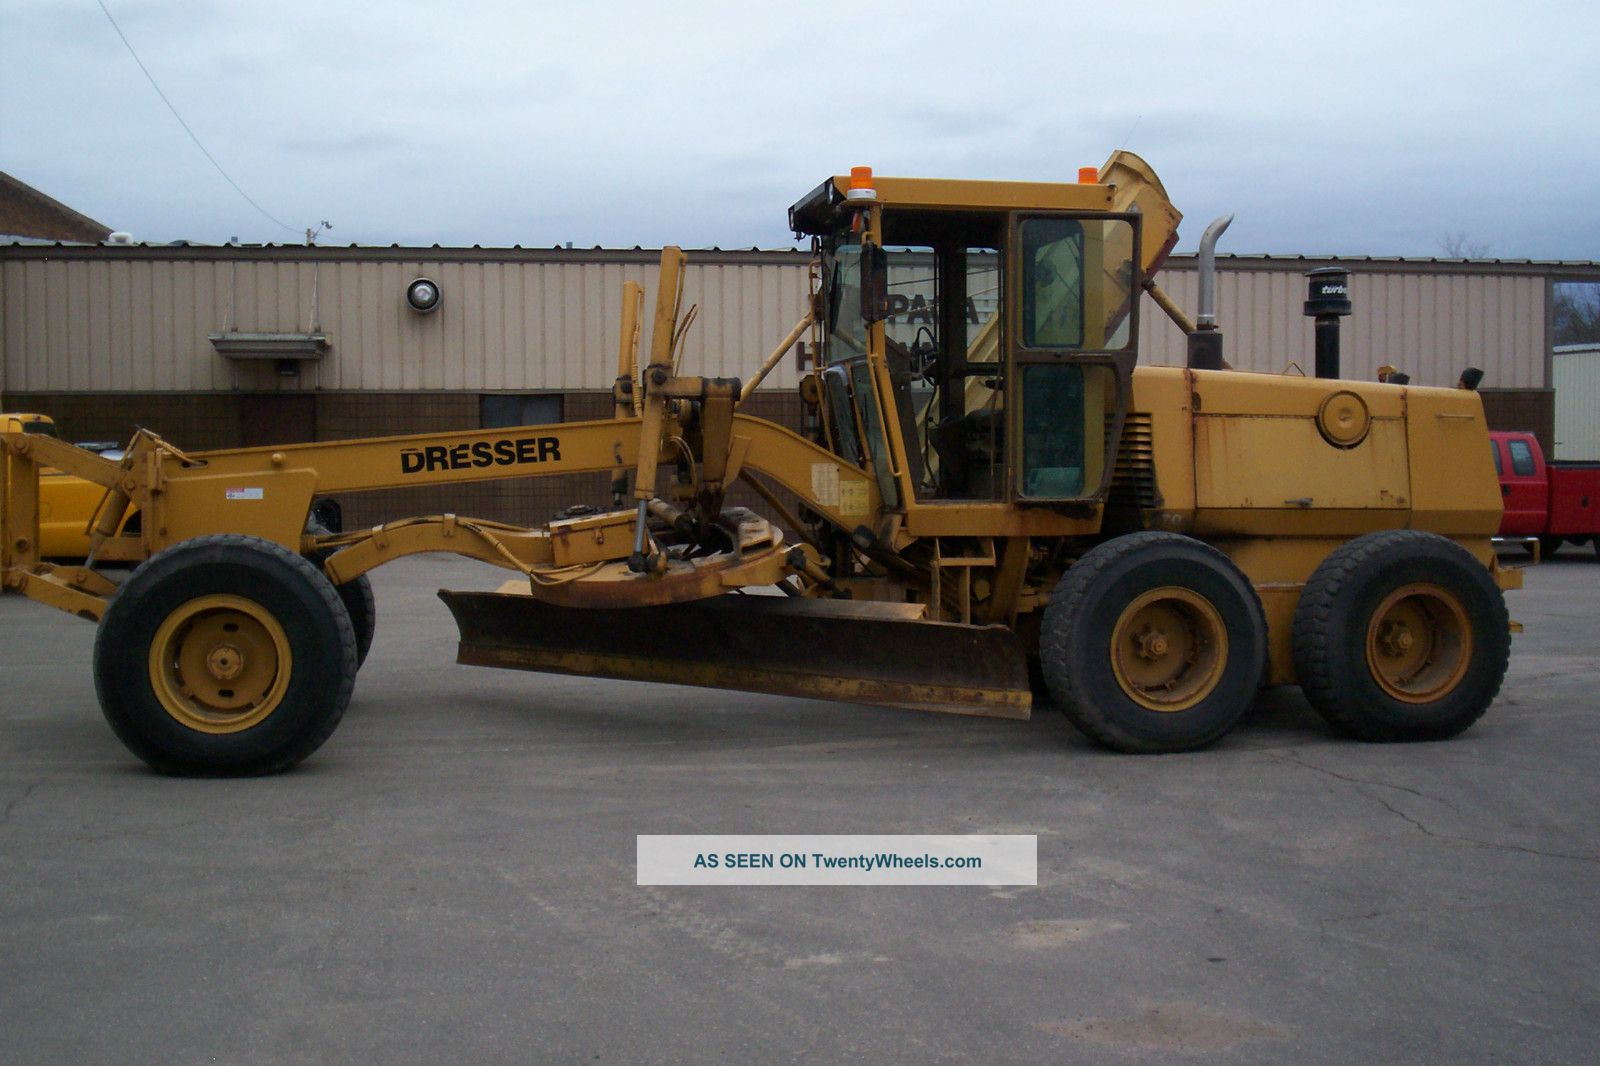 1992 Dressor Model 870 Motor Grader W/plow Wing Graders photo